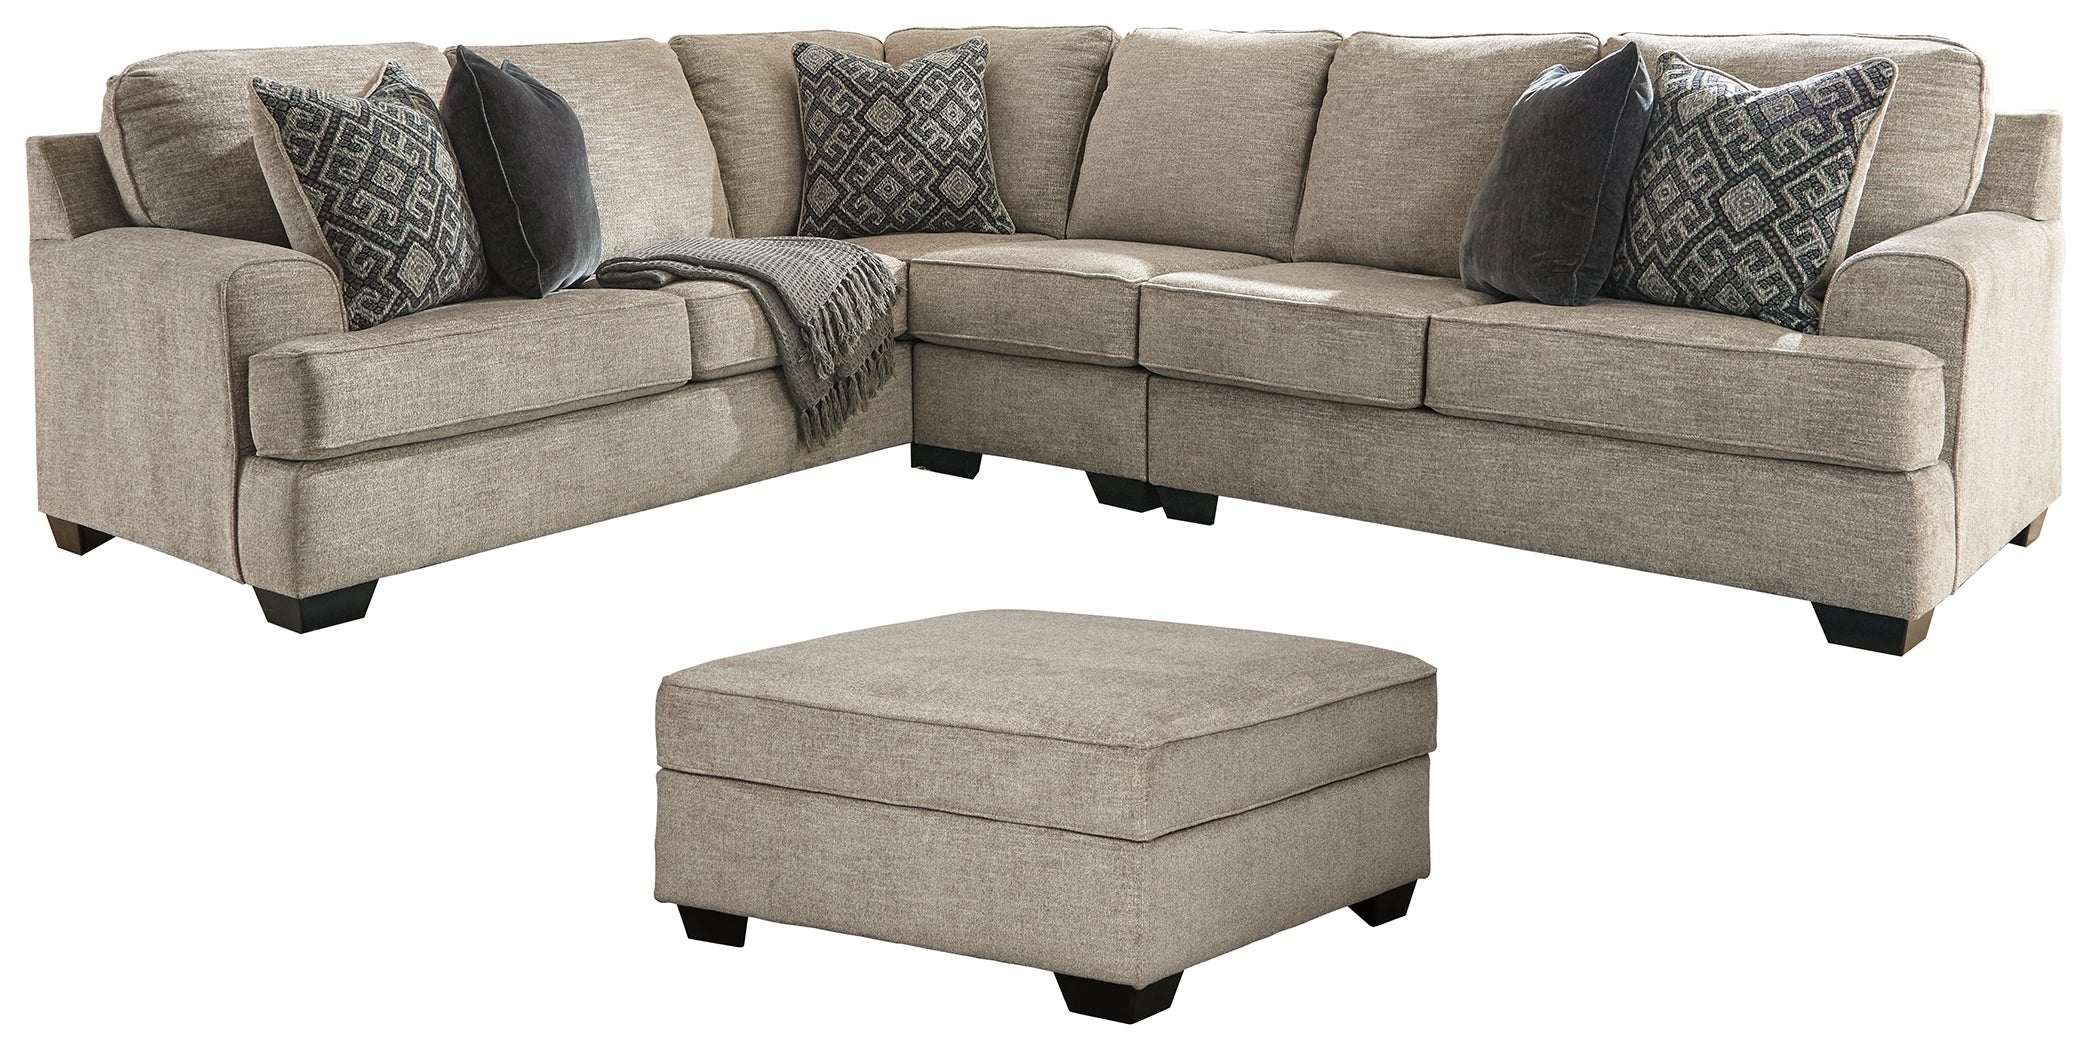 Bovarian Signature Design 4-Piece Upholstery Package